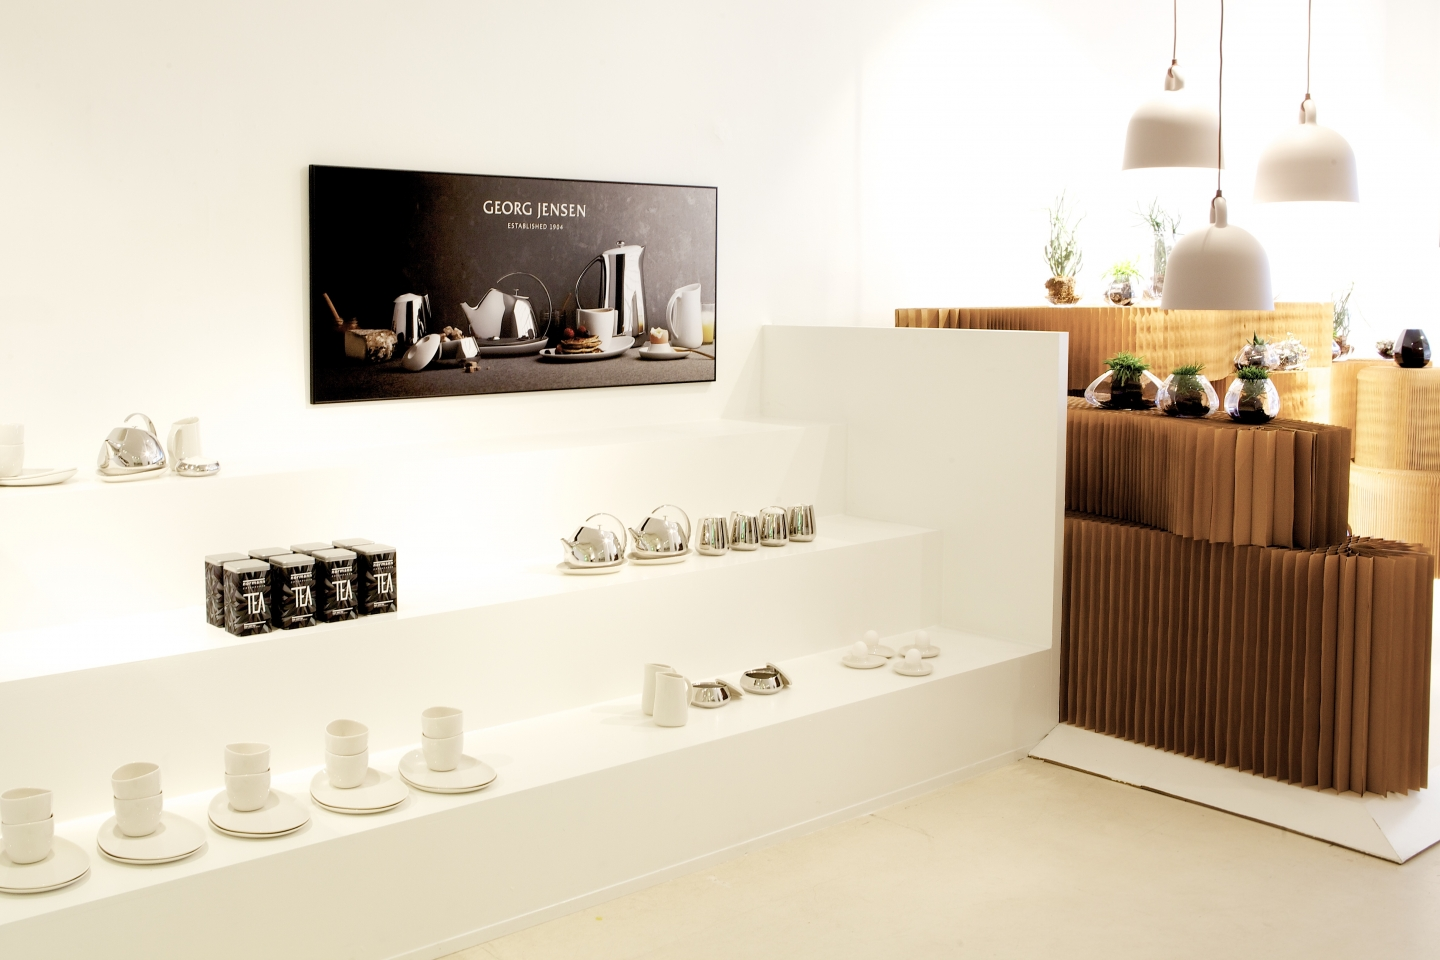 molo brown paper softblock retail display at Georg Jensen in Copenhagen